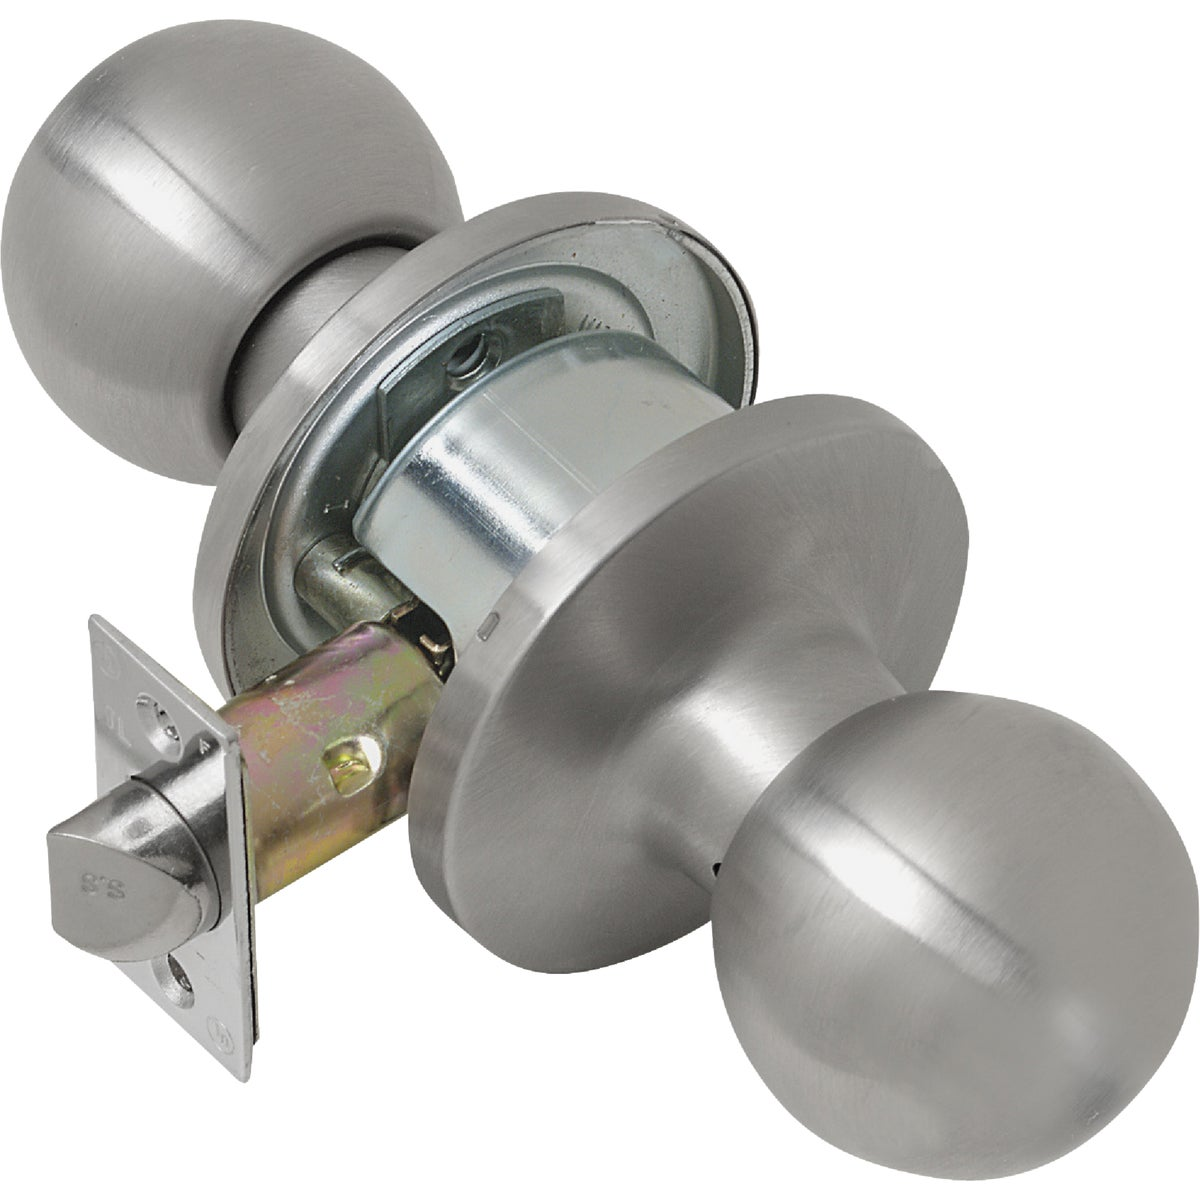 32D LD COMM PASS KNOB - CL100051 by Tell Mfg Inc